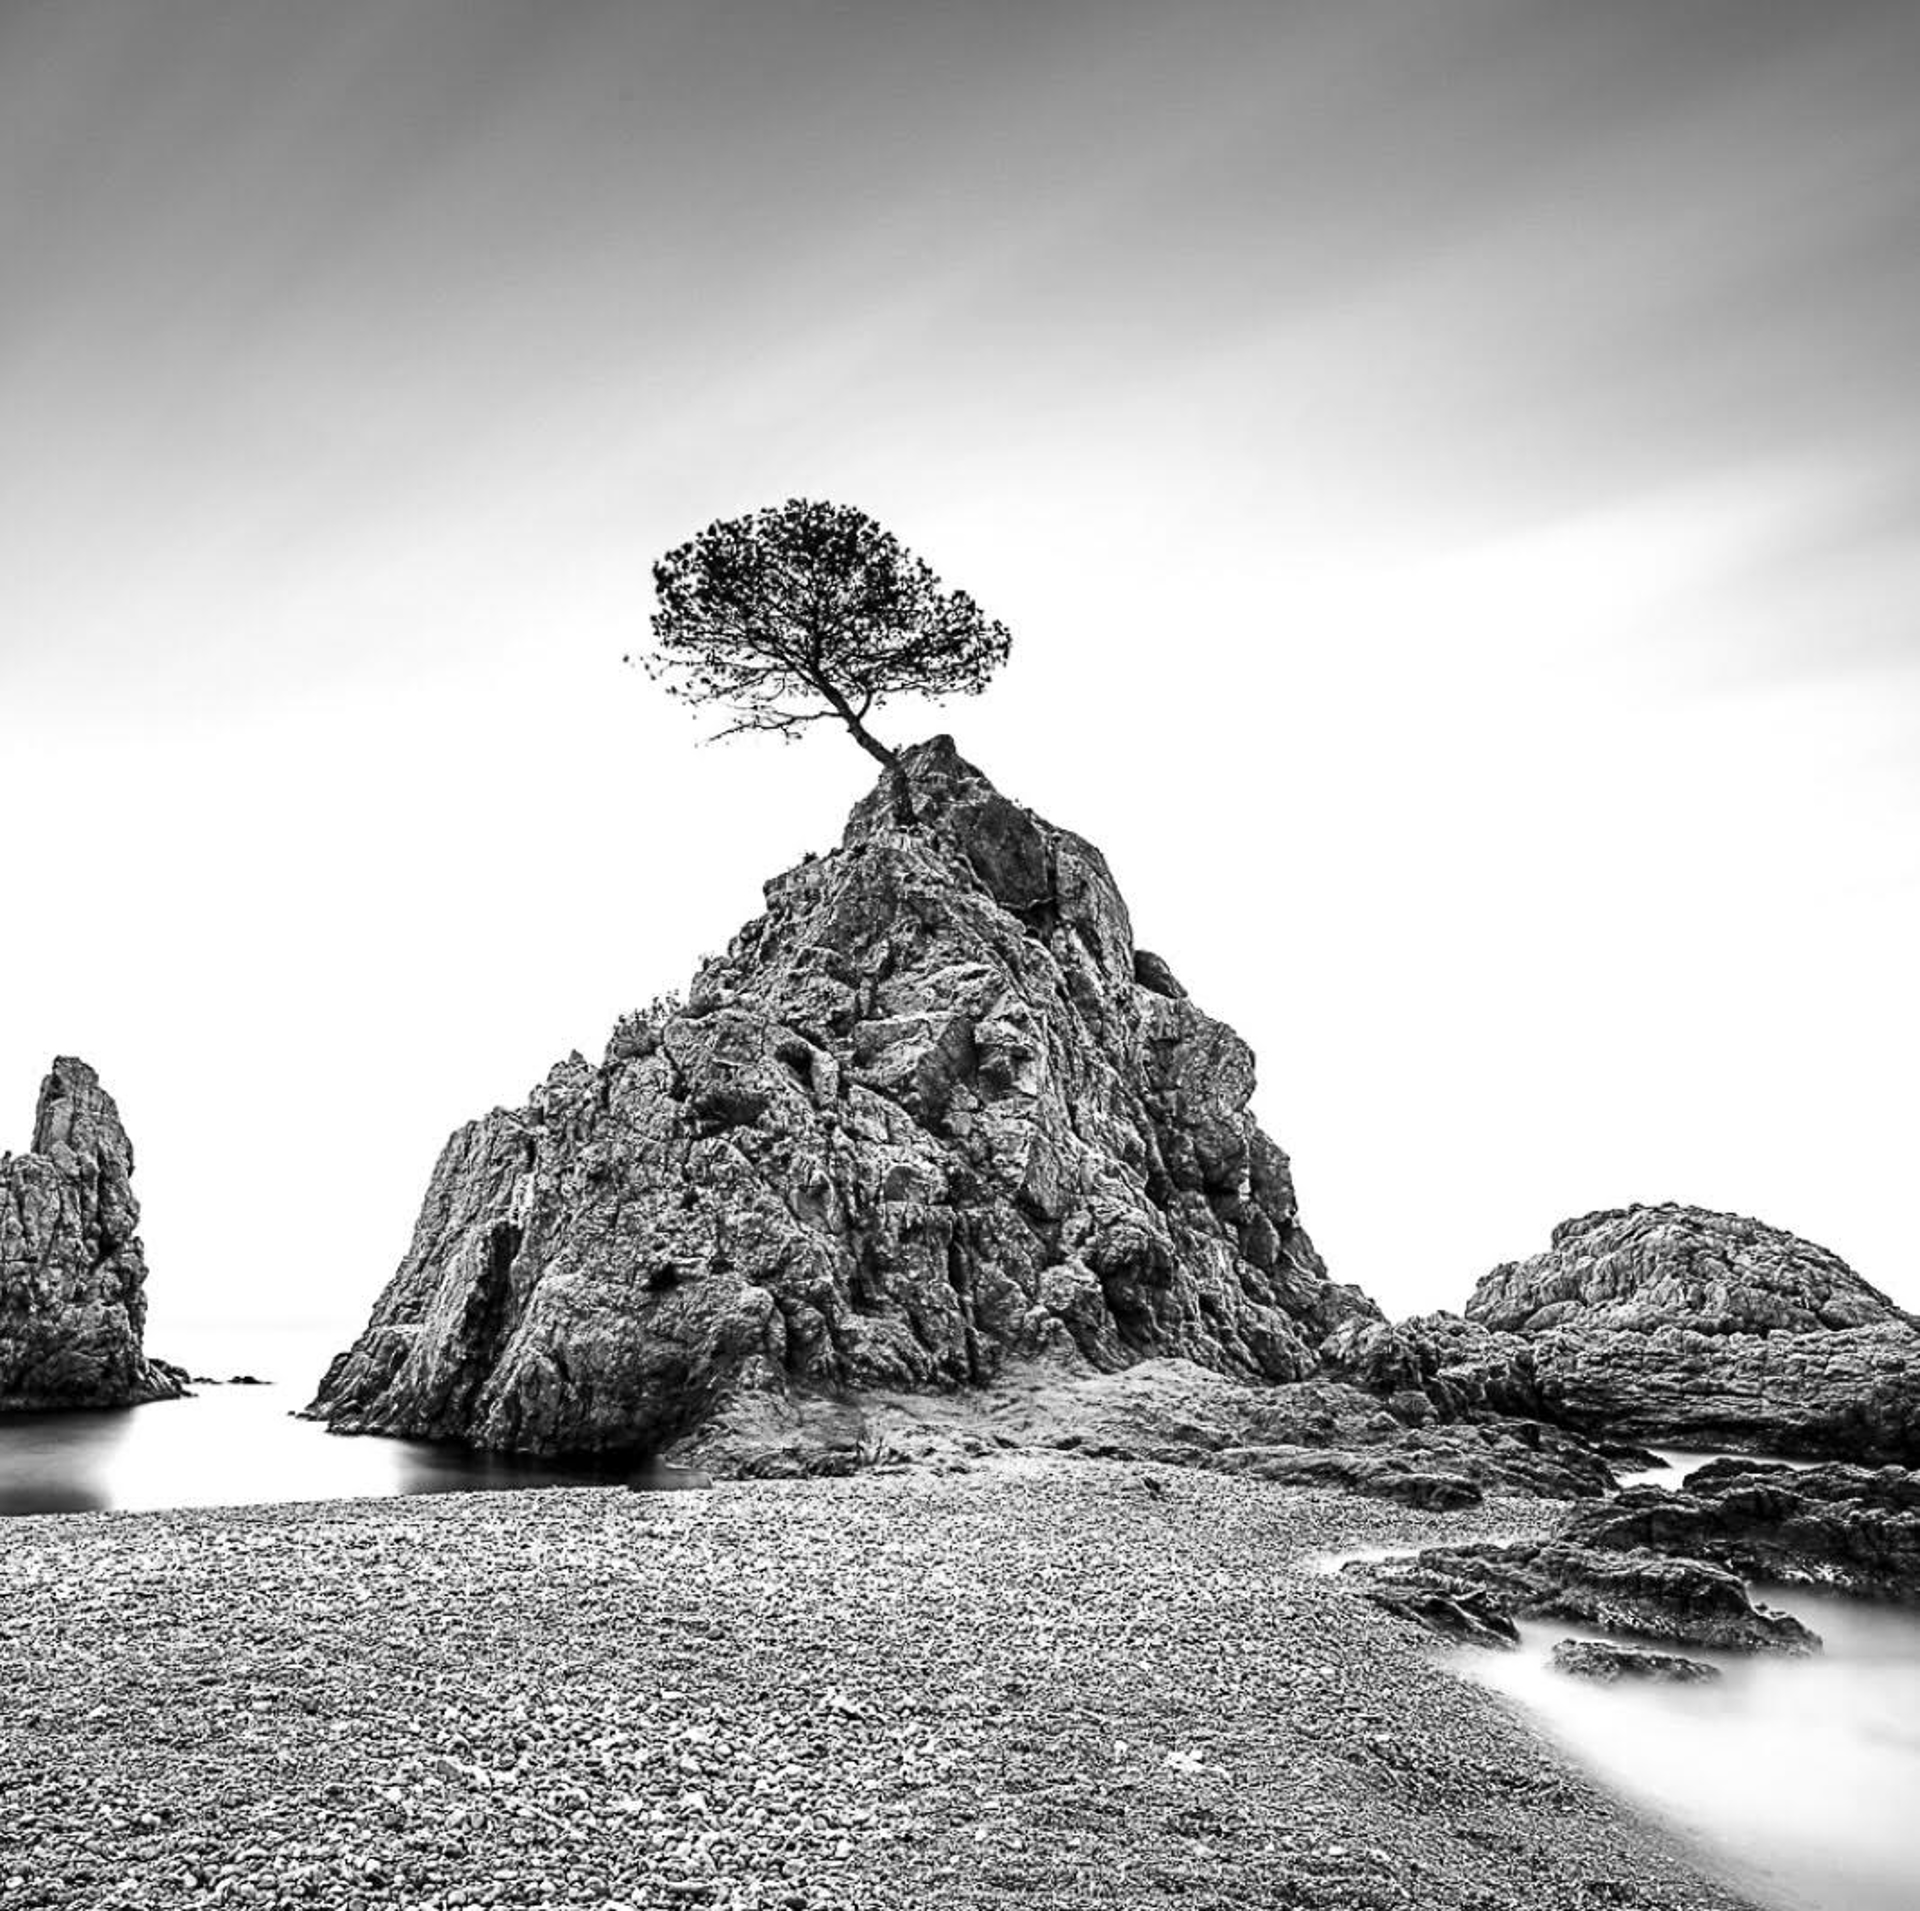 Tree at Tossa de Mar by Keith Ramsdell